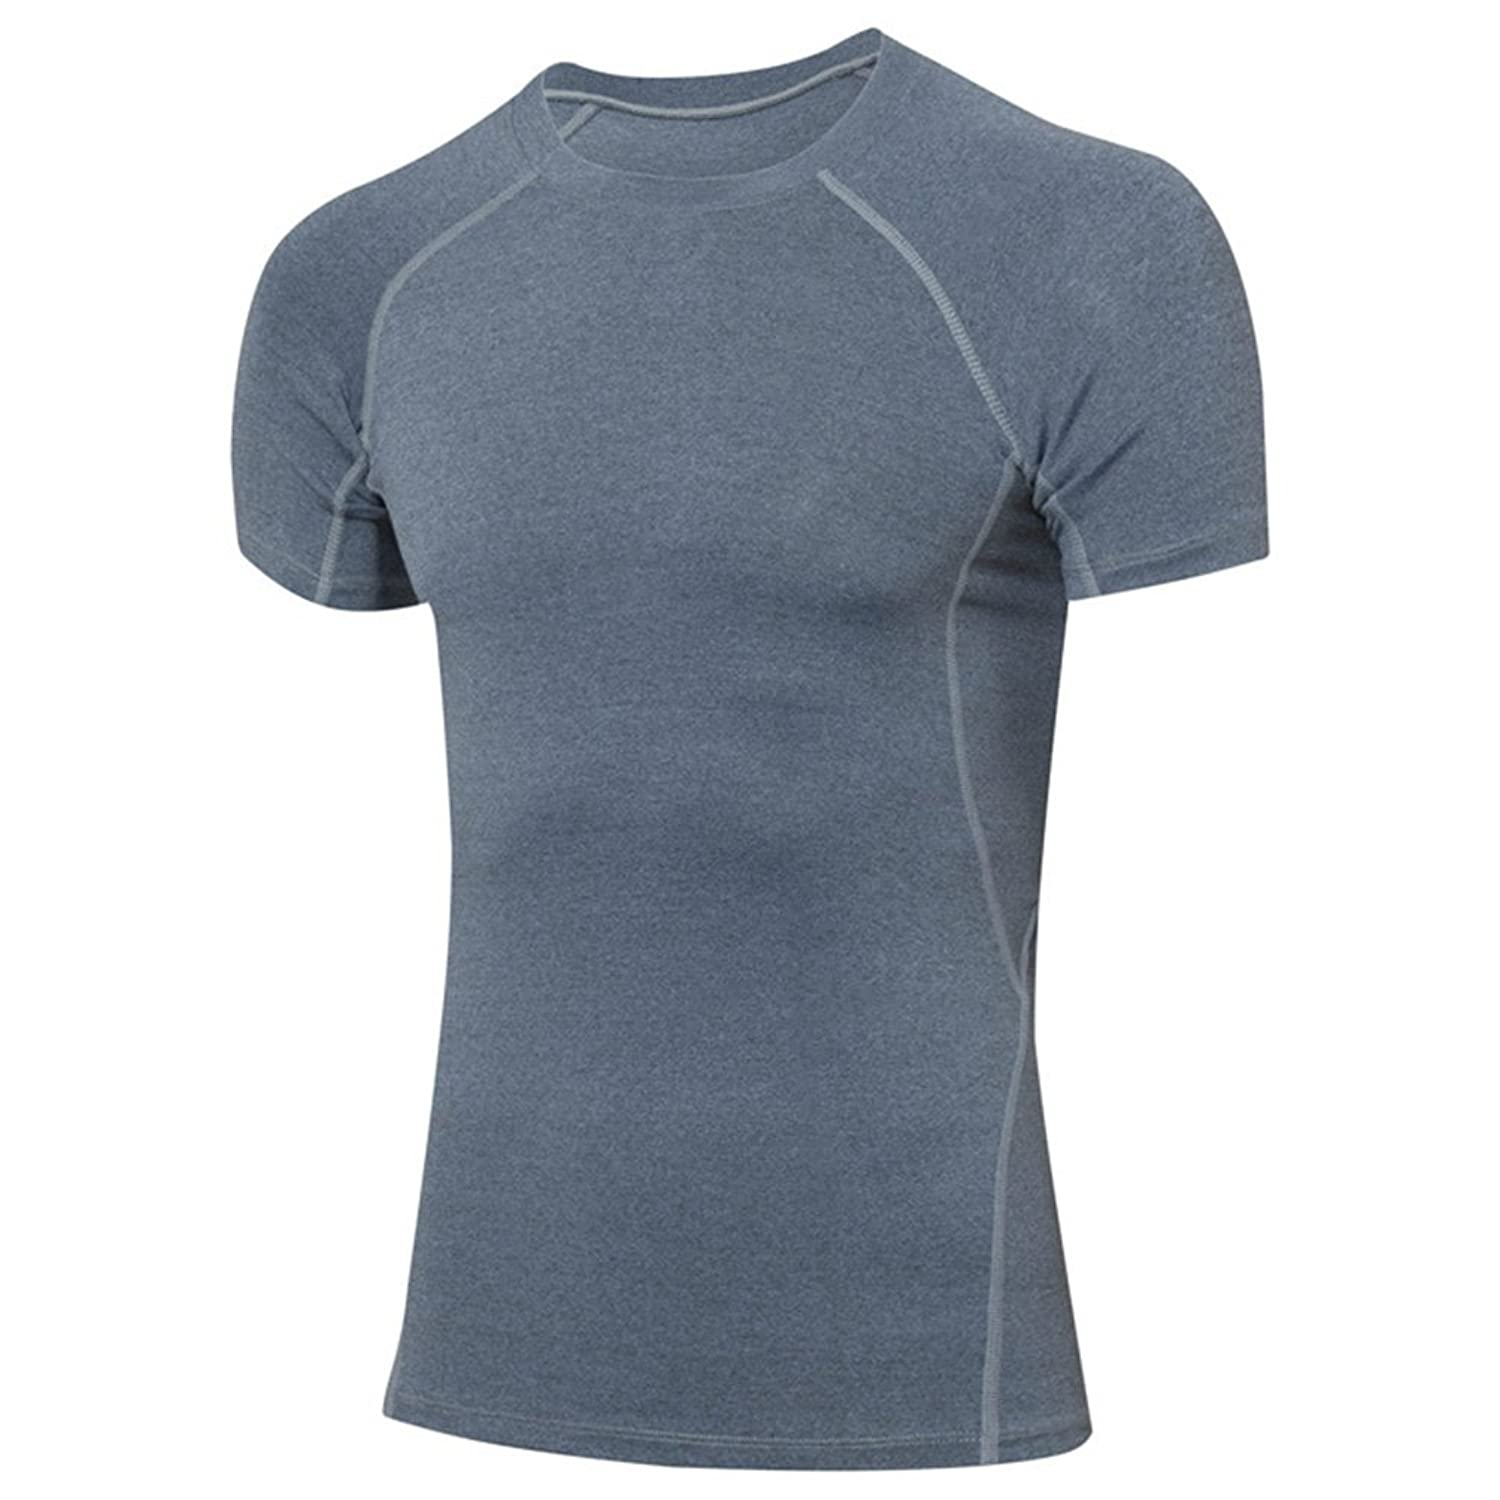 YiJee Herren Sports Pro Cool Compression Shortsleeve Tee mit Quick-Dry-Funktion